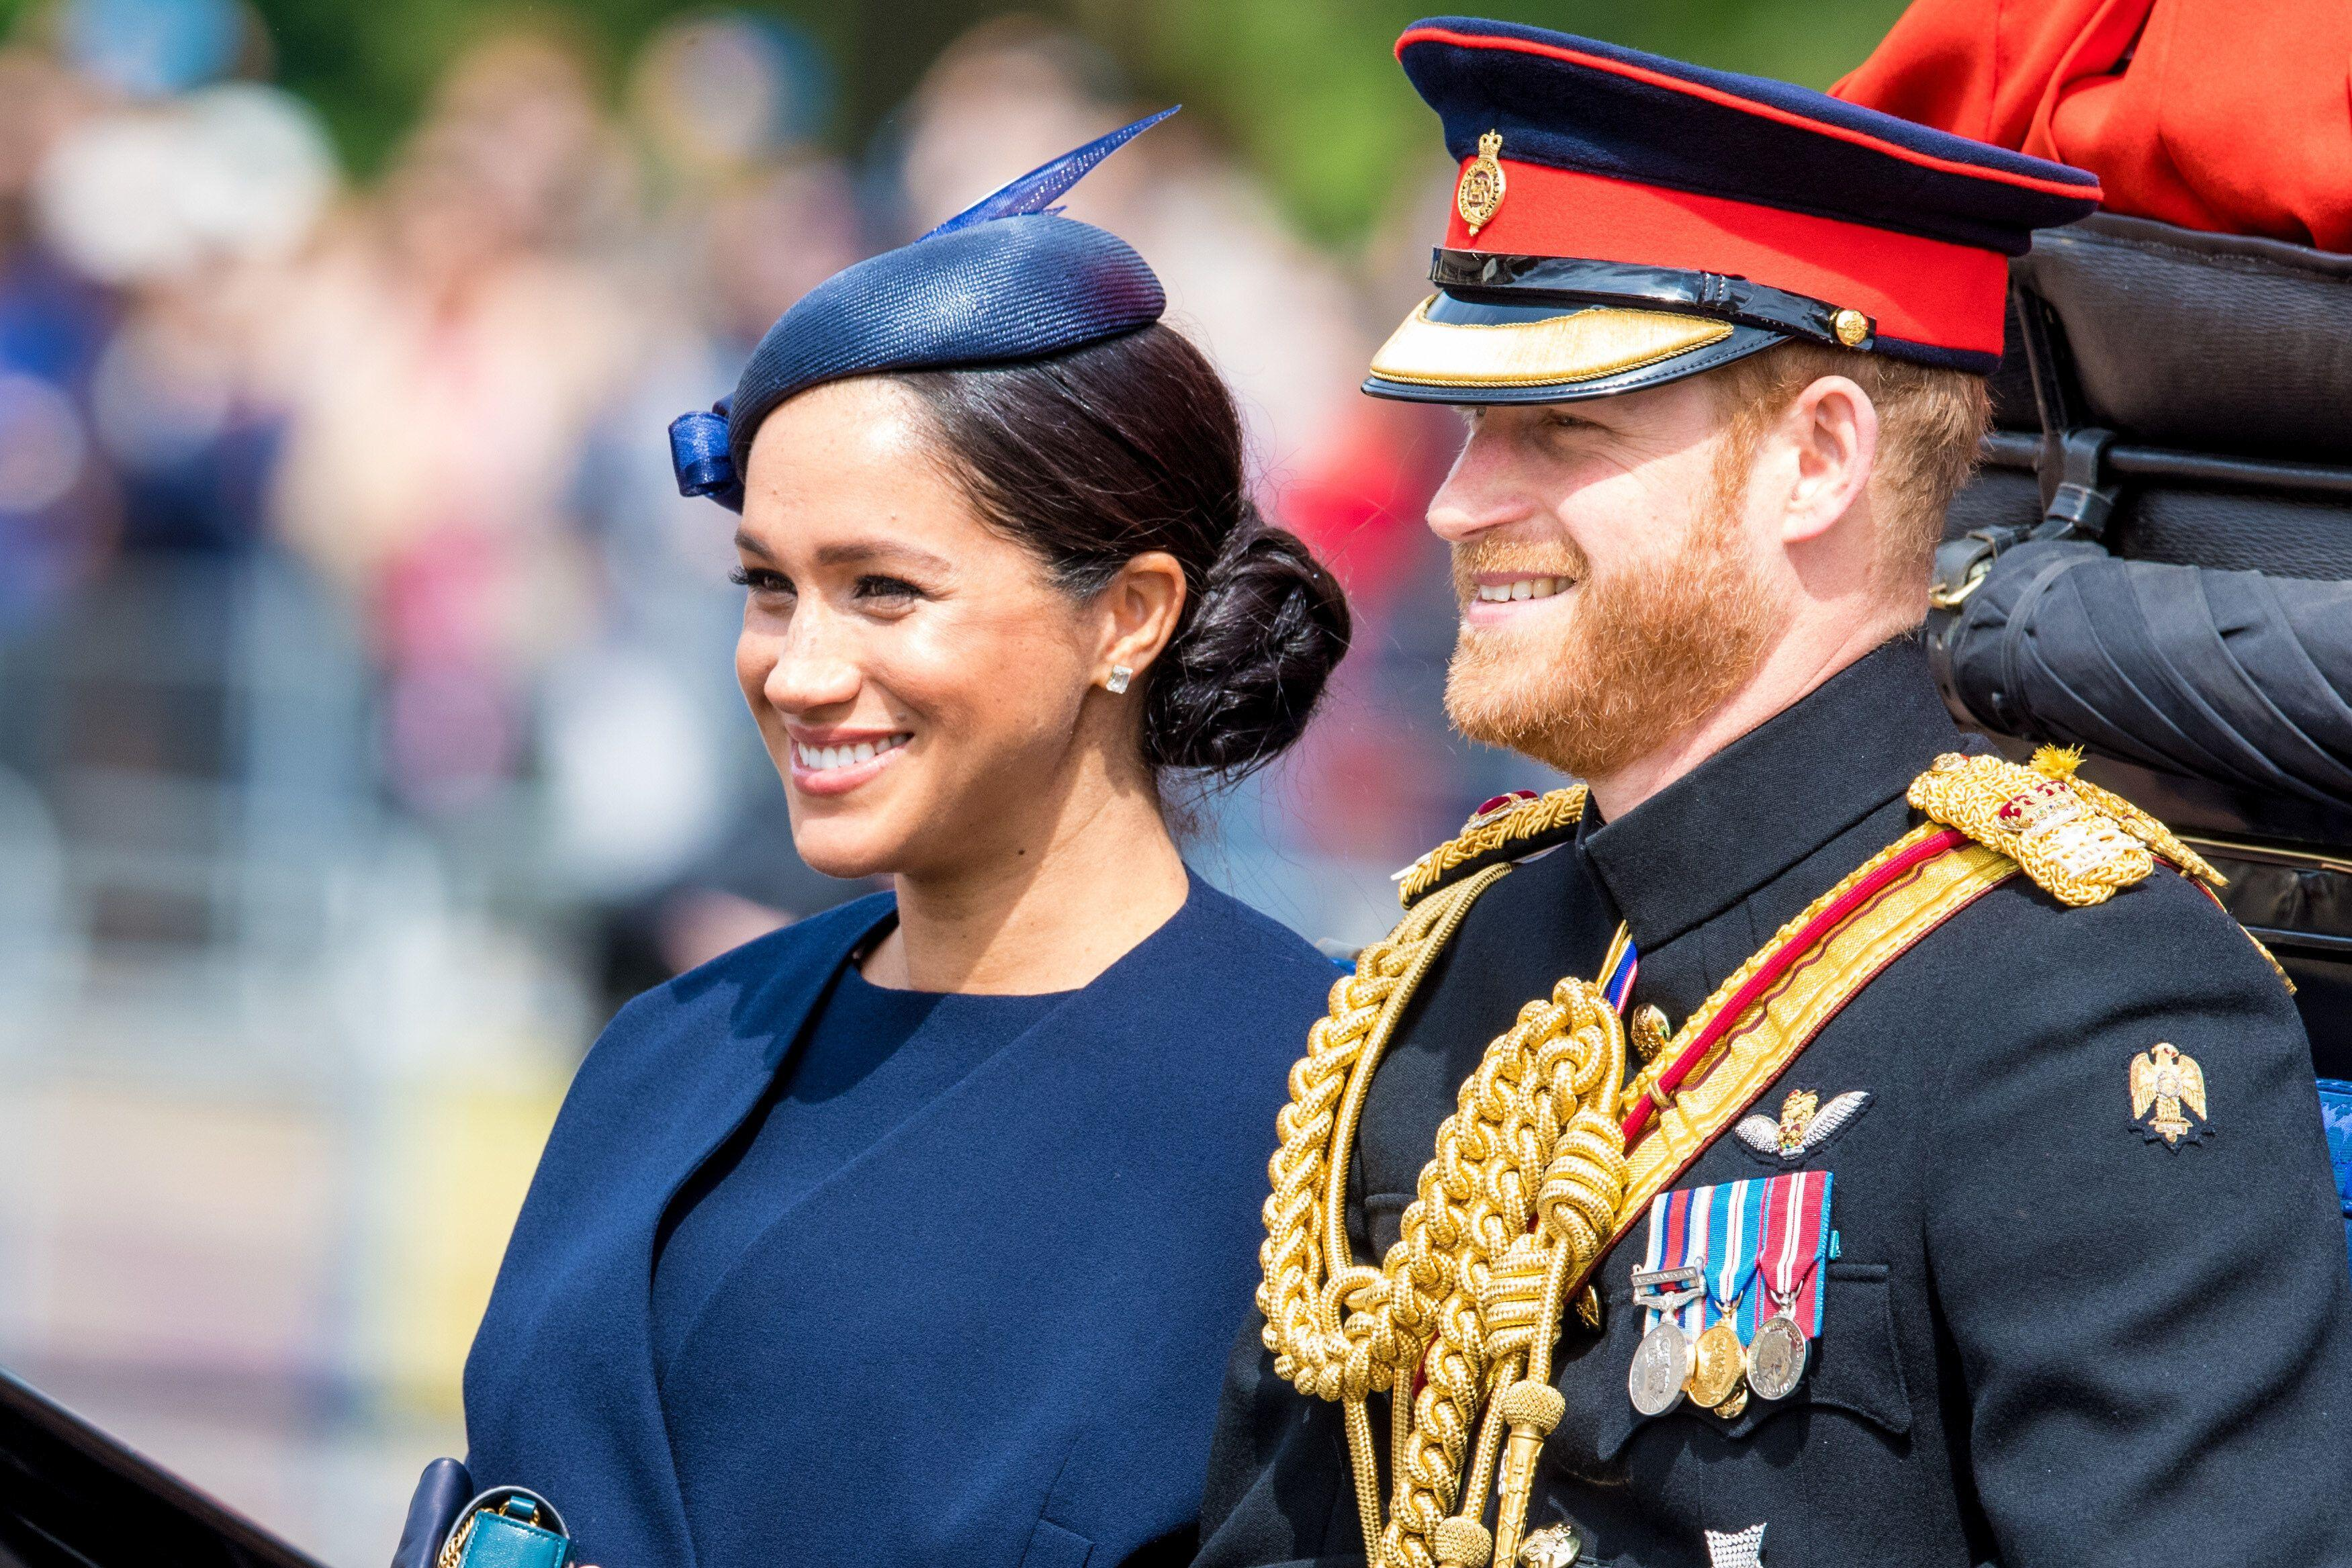 Prince Harry Duke of Sussex and Meghan Markle Duchess of Sussex during Trooping the Colour ceremony